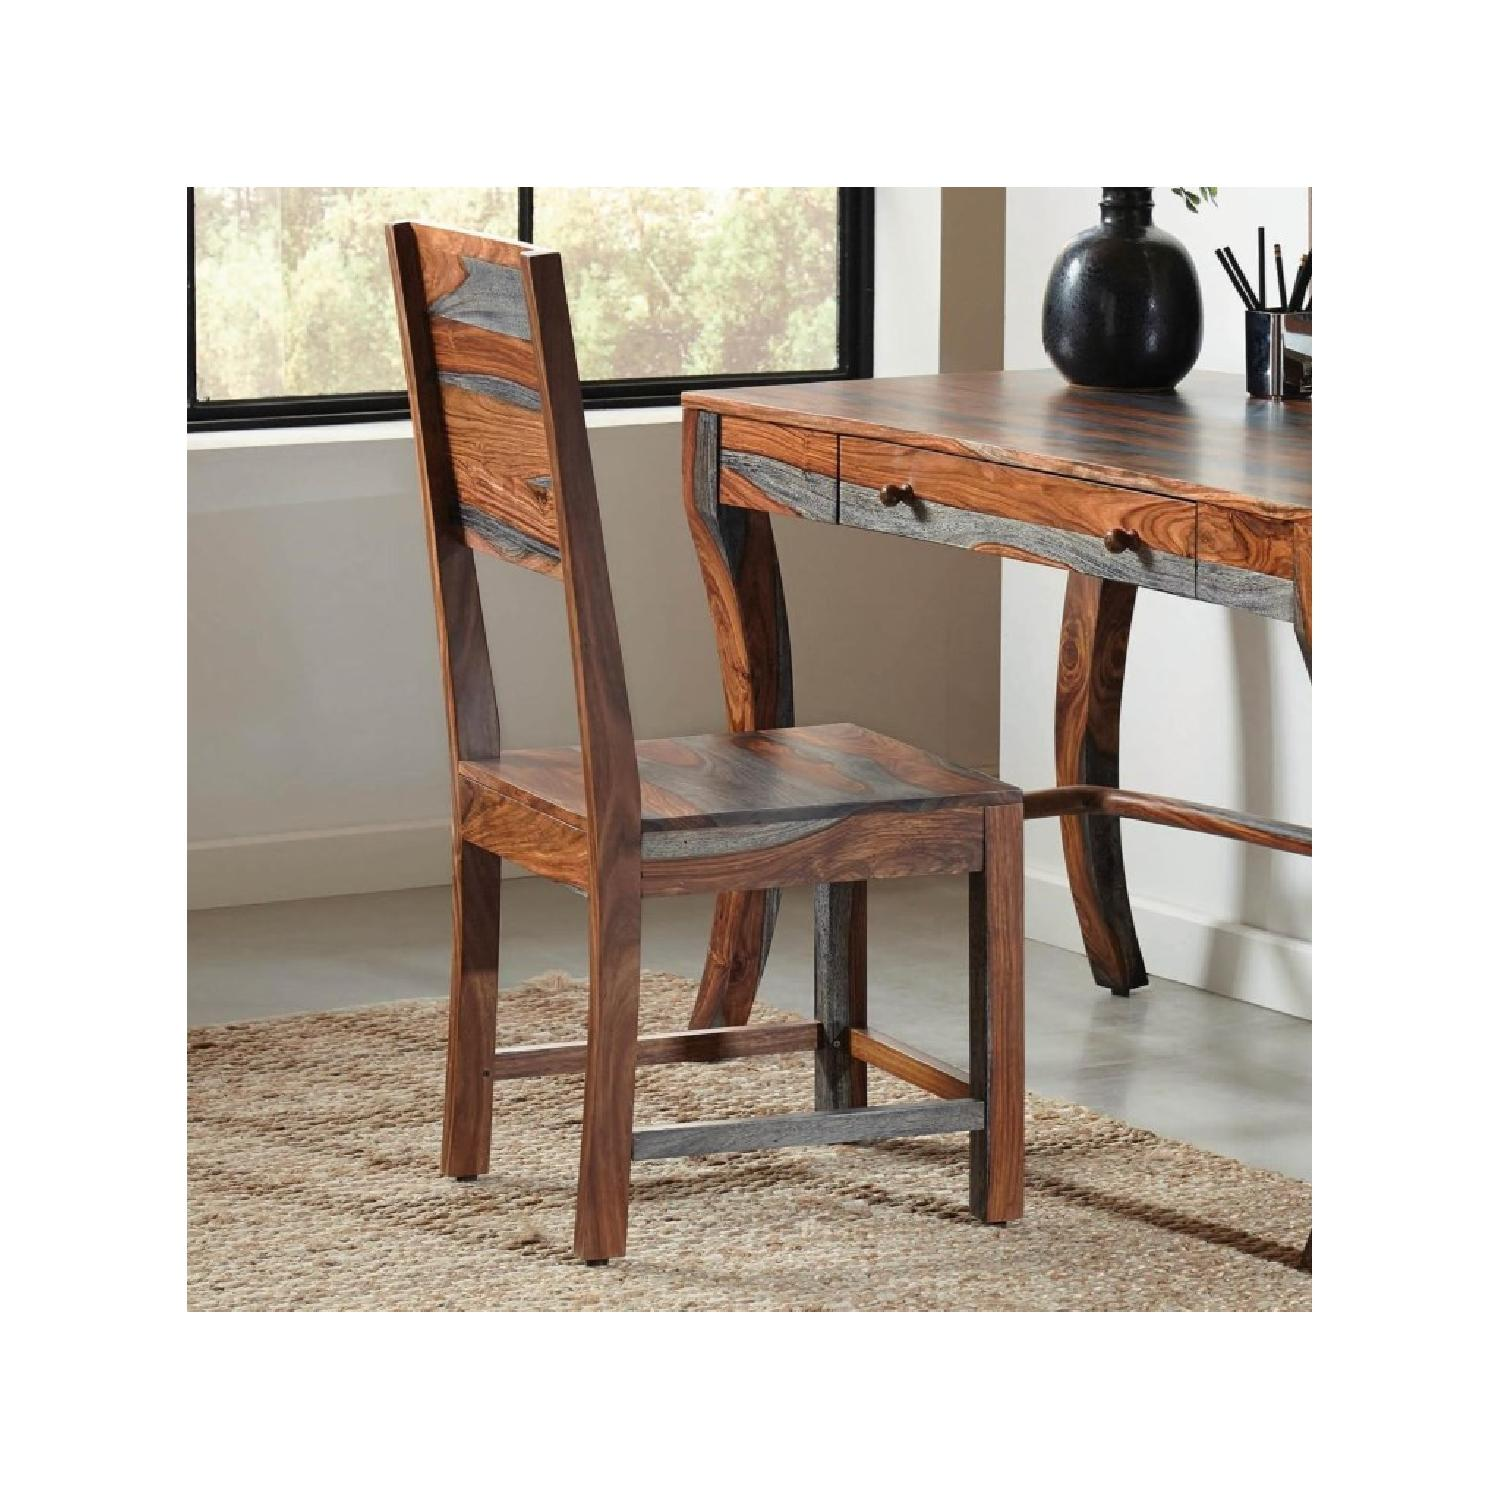 Artistic Grey Sheesham Desk Chair - image-3